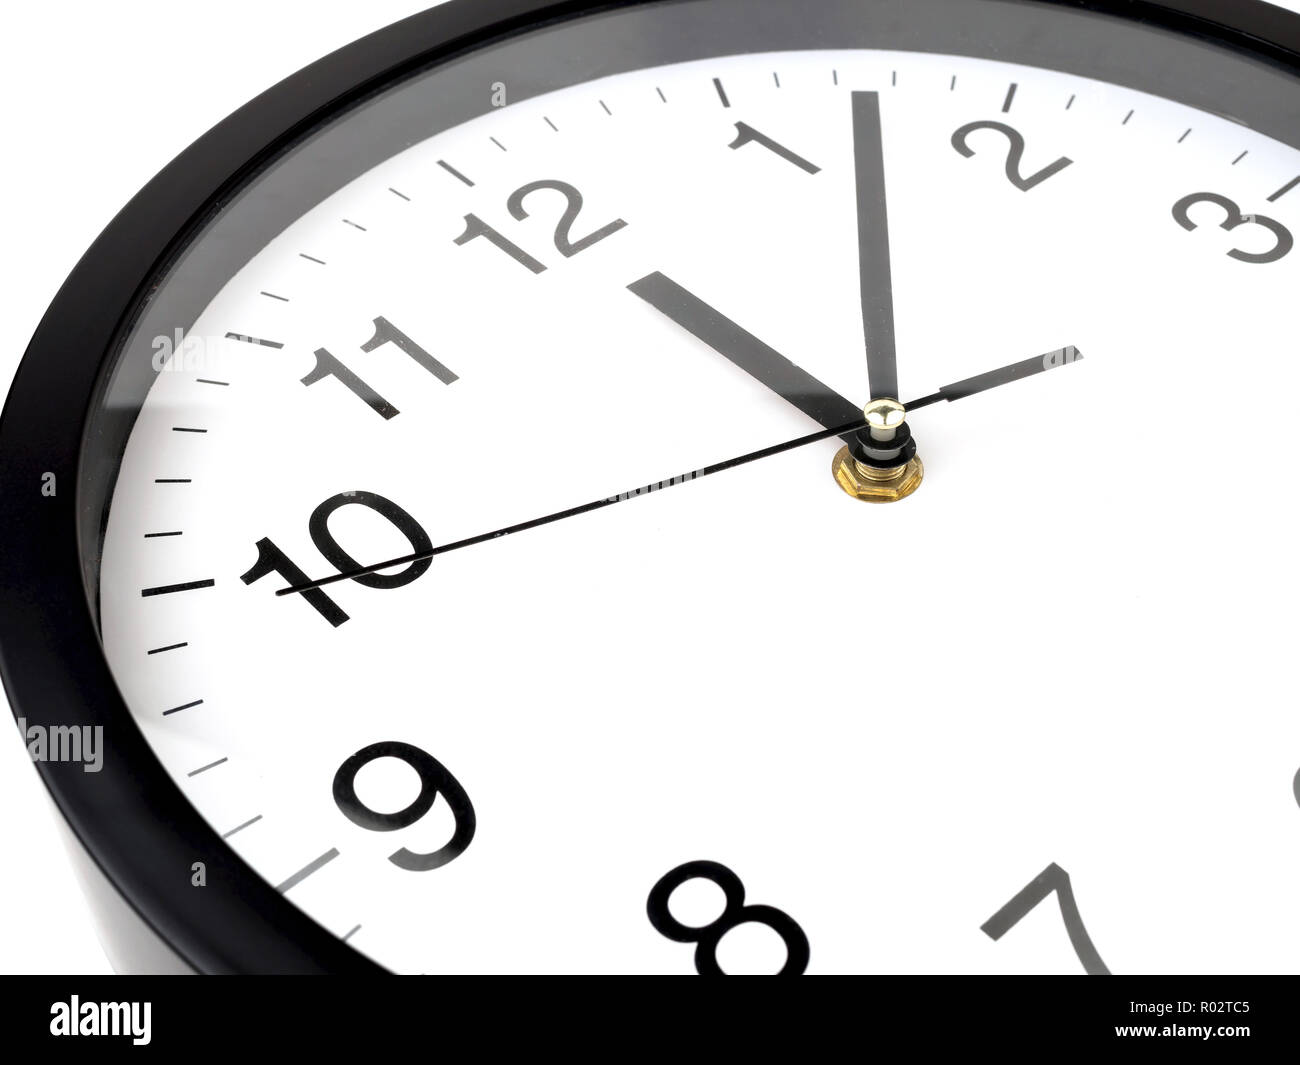 Clock or time abstract background, white clock and black needles, Twelve o'clock, seven minutes - Stock Image